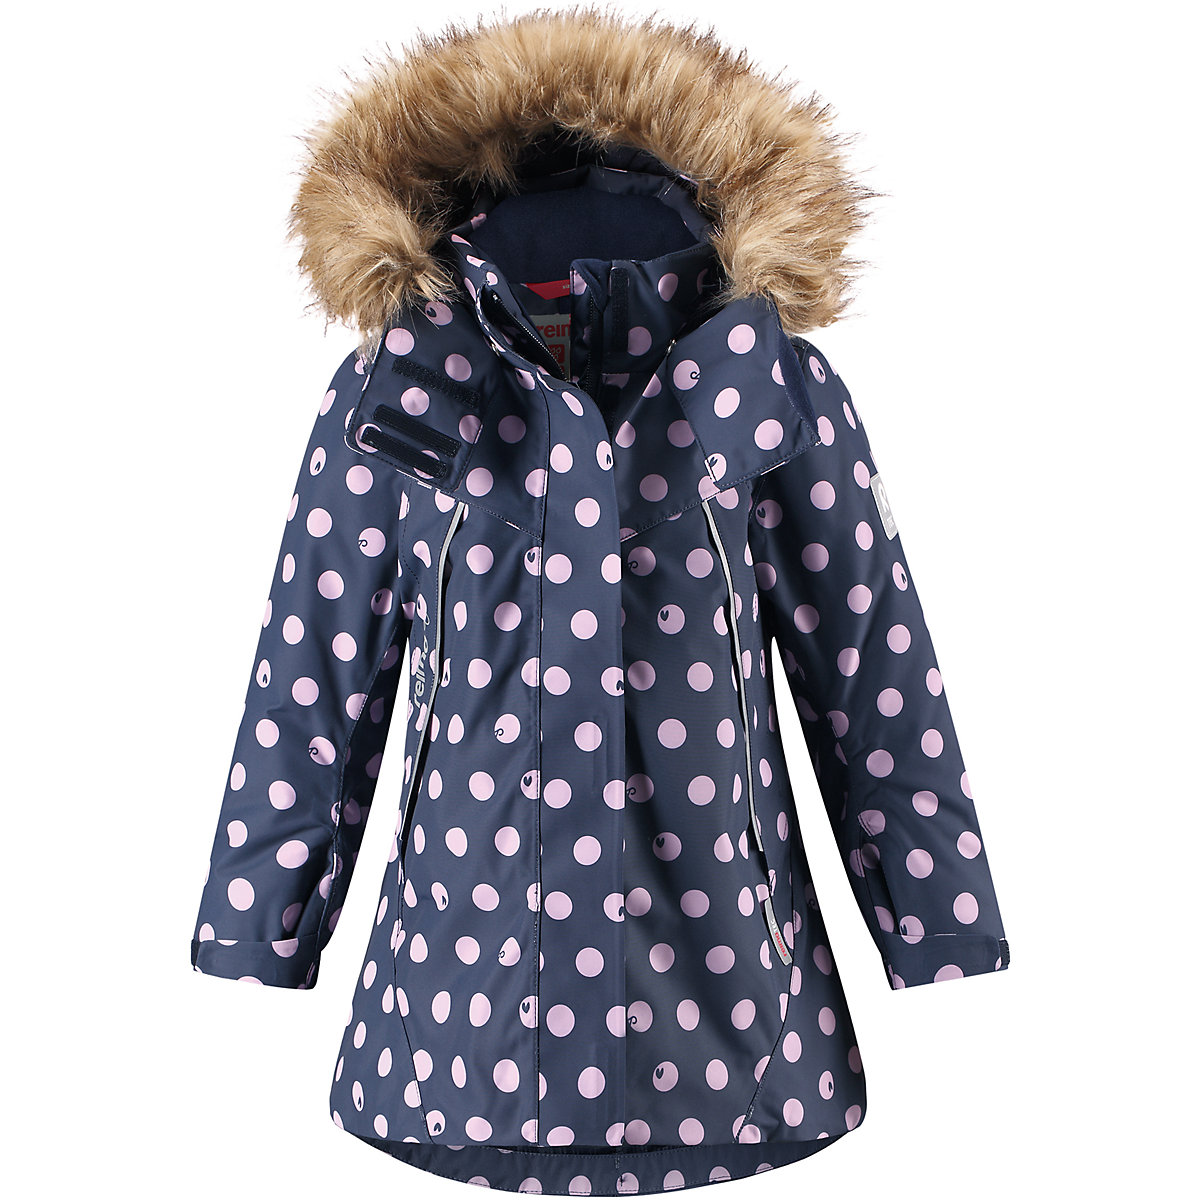 REIMA Jackets 8665390 for girls polyester winter  fur clothes girl jackets